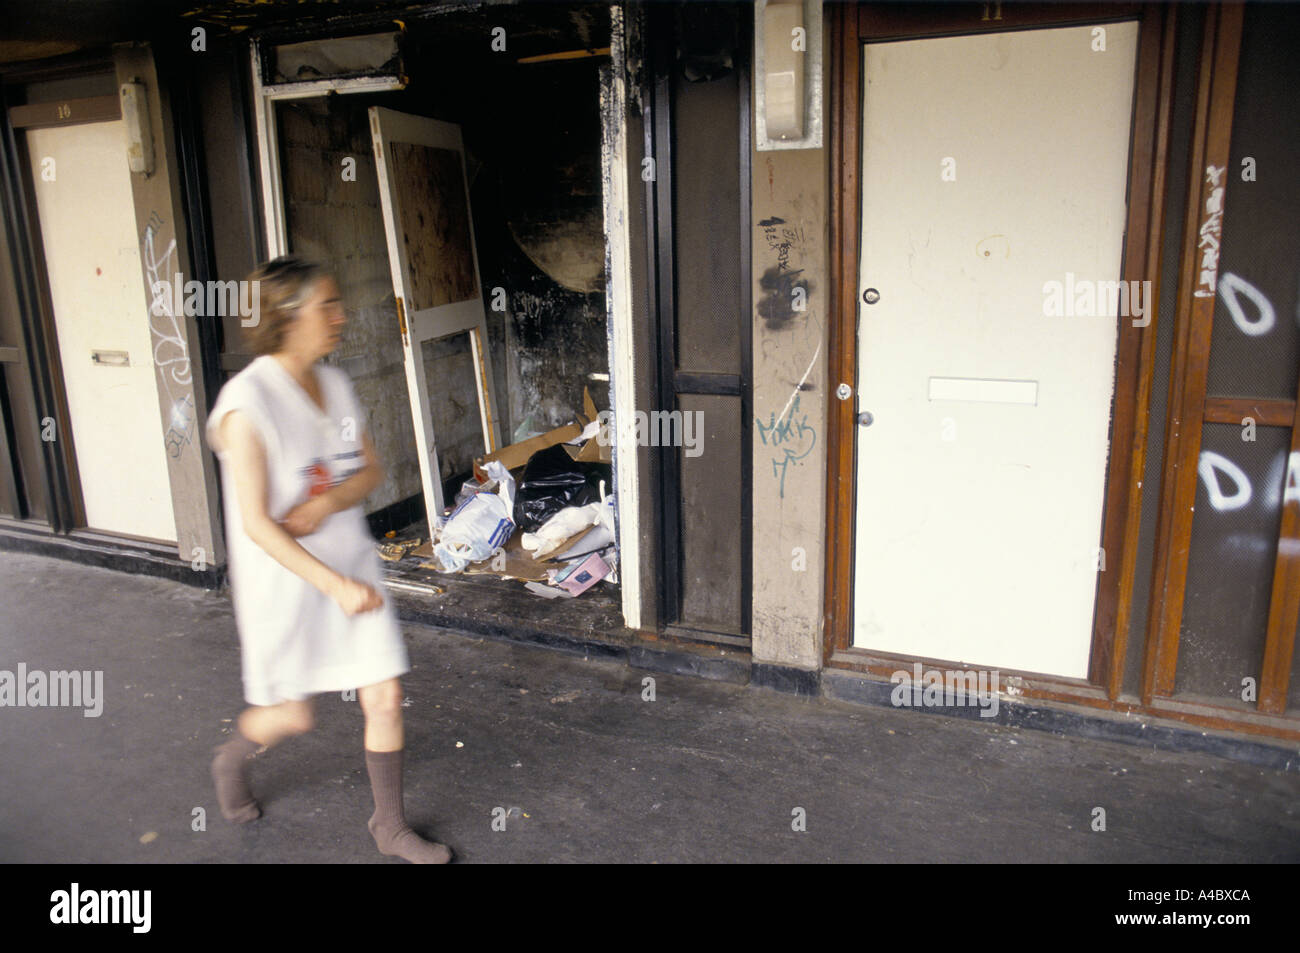 A WOMAN IN PYJAMAS & SOCKS WALKING PASS A DOORWAY OF A DERELICT FLAT LITTERED WITH GARBAGE IN A HOUSING ESTATE - Stock Image